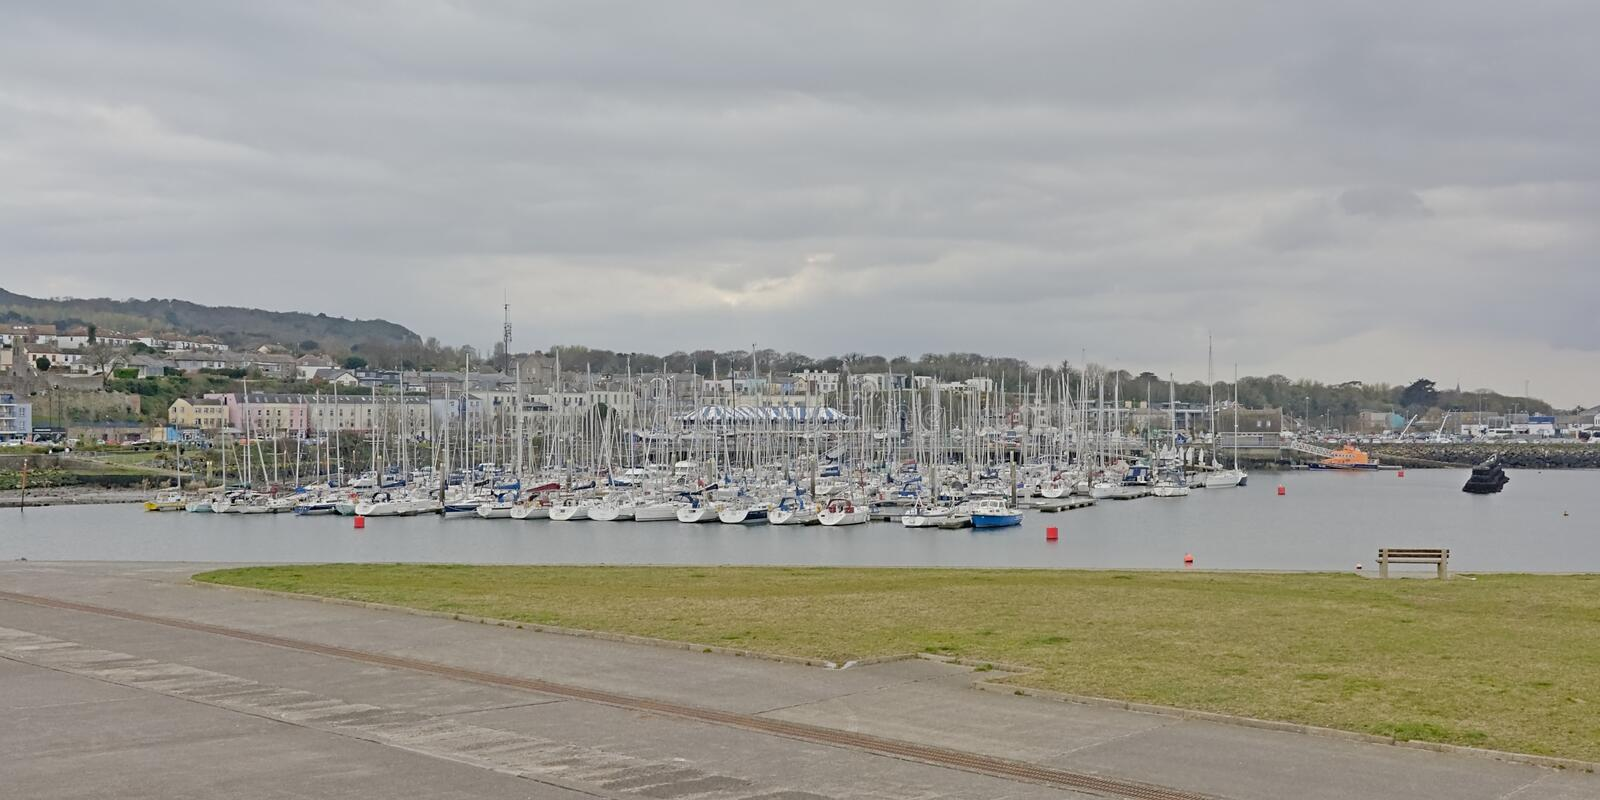 Yachts in the harbor of Howth, Ireland royalty free stock photography